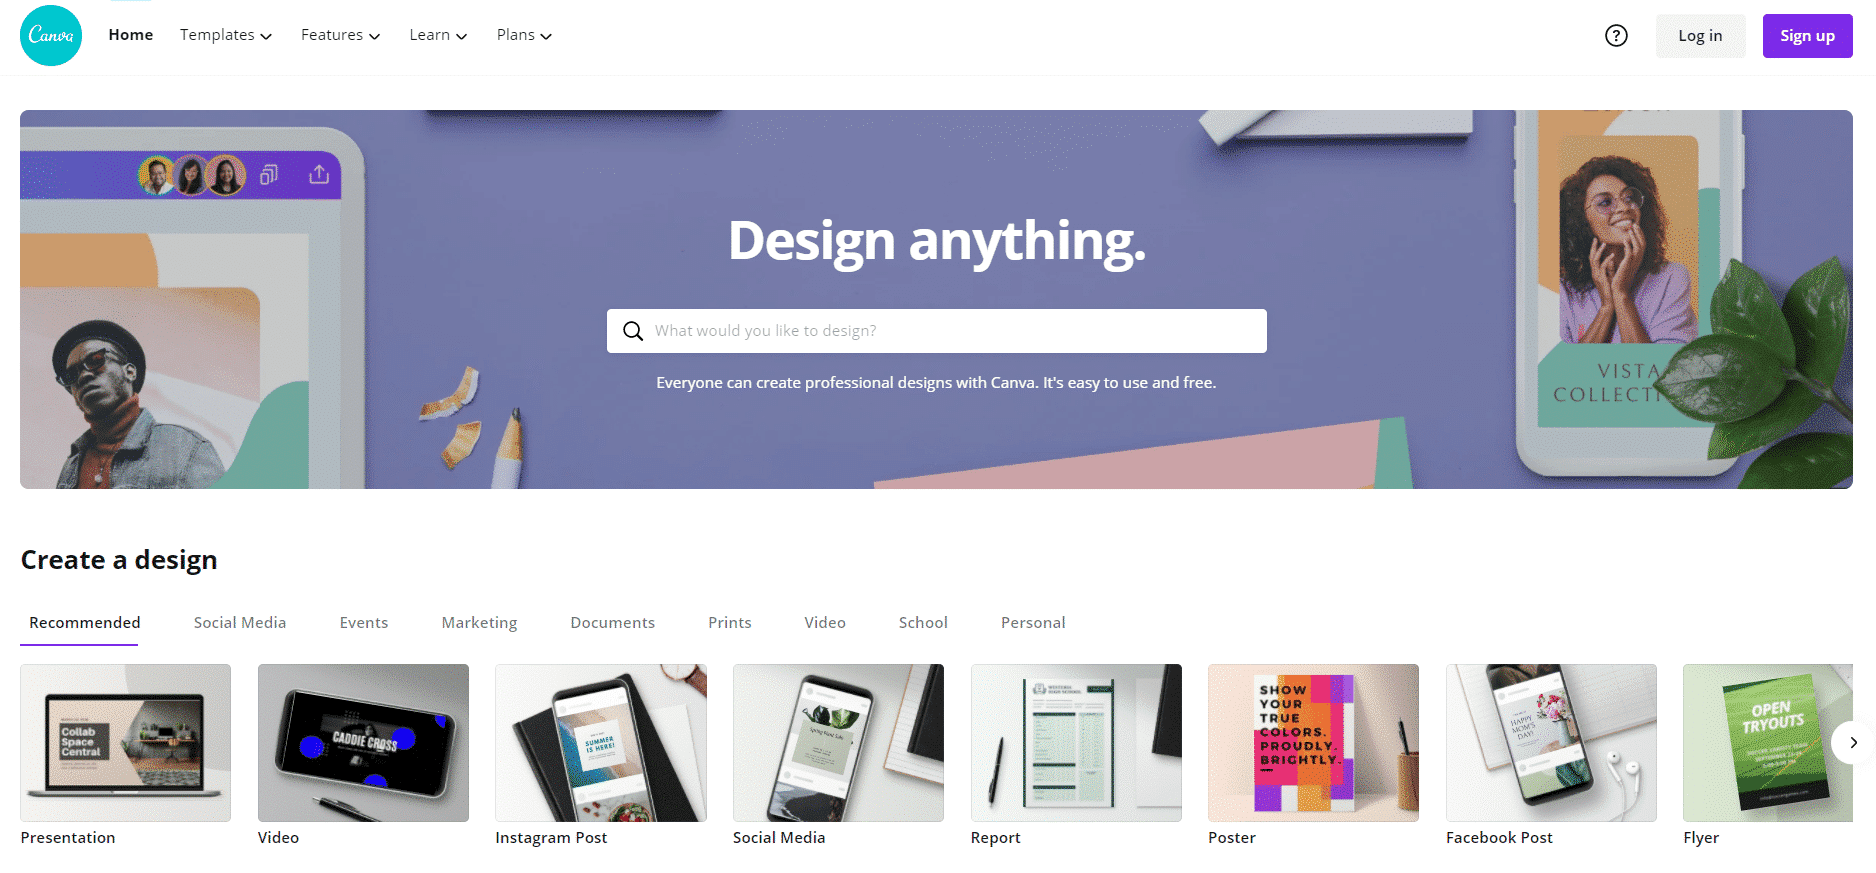 Canva Homepage - Design Beautiful Images